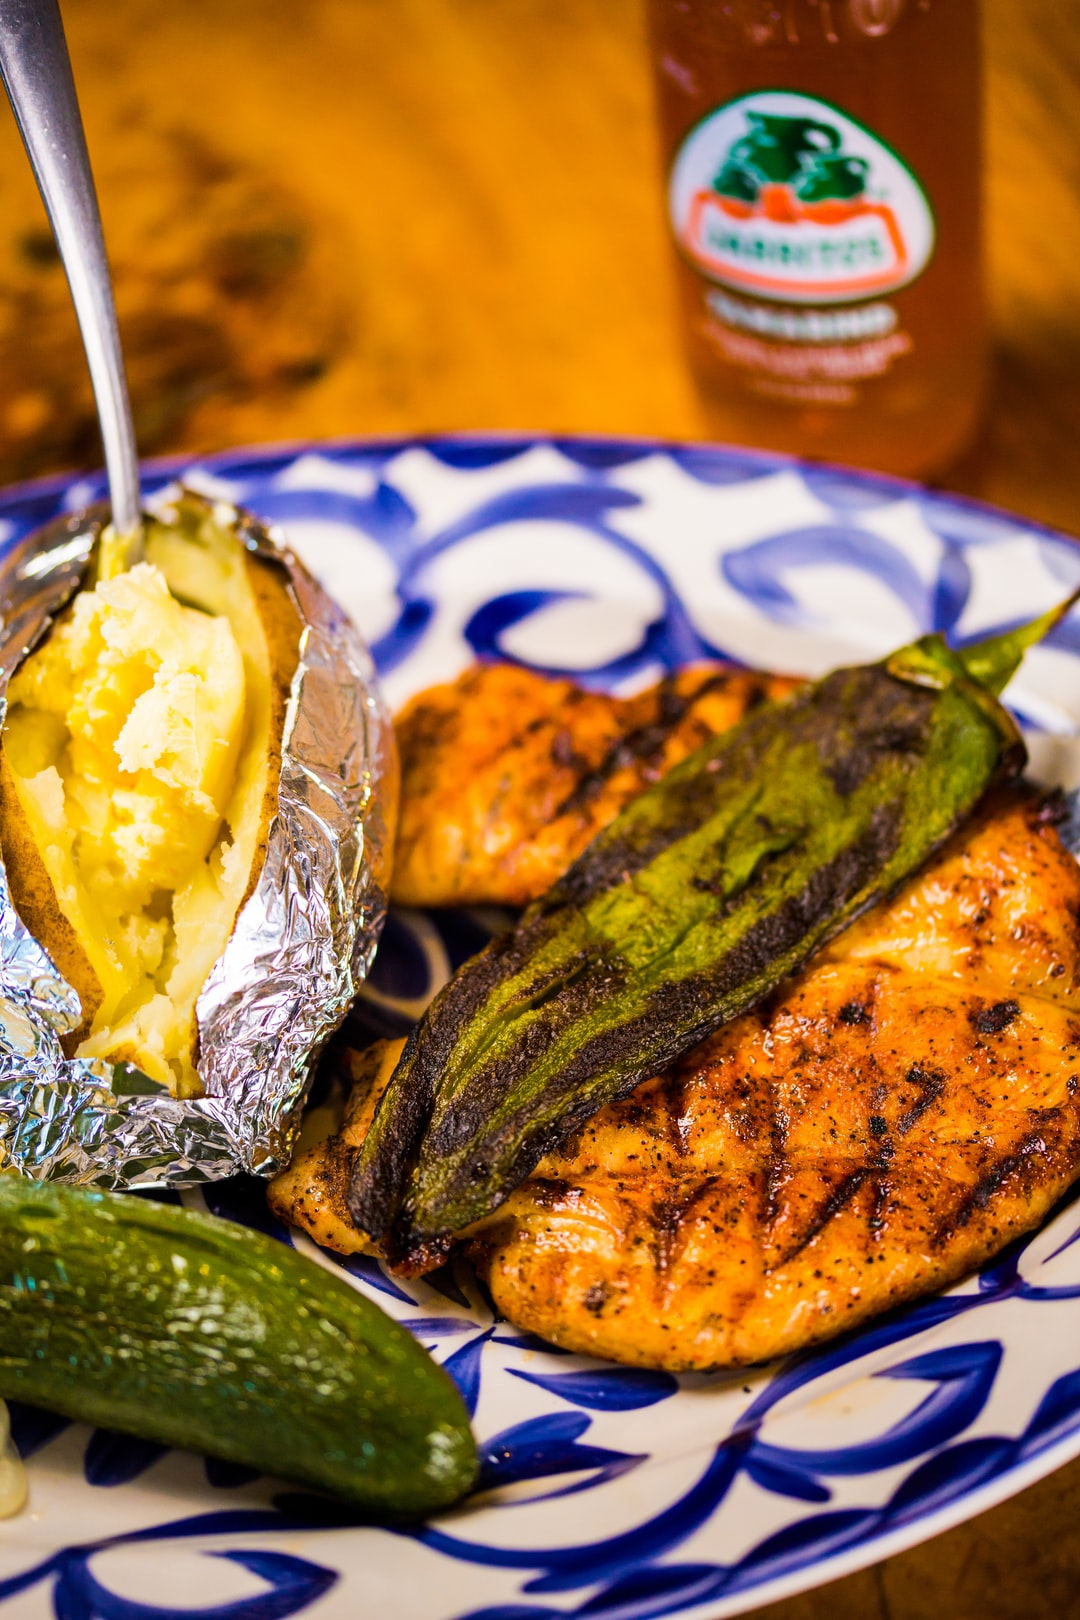 Grilled chicken a la Mexicana with a baked potato, a roasted green chile, a roasted jalapeño and an all-natural-flavored Jarritos Tamarind Mexican Soda. The dish is served on a traditional Talavera plate.